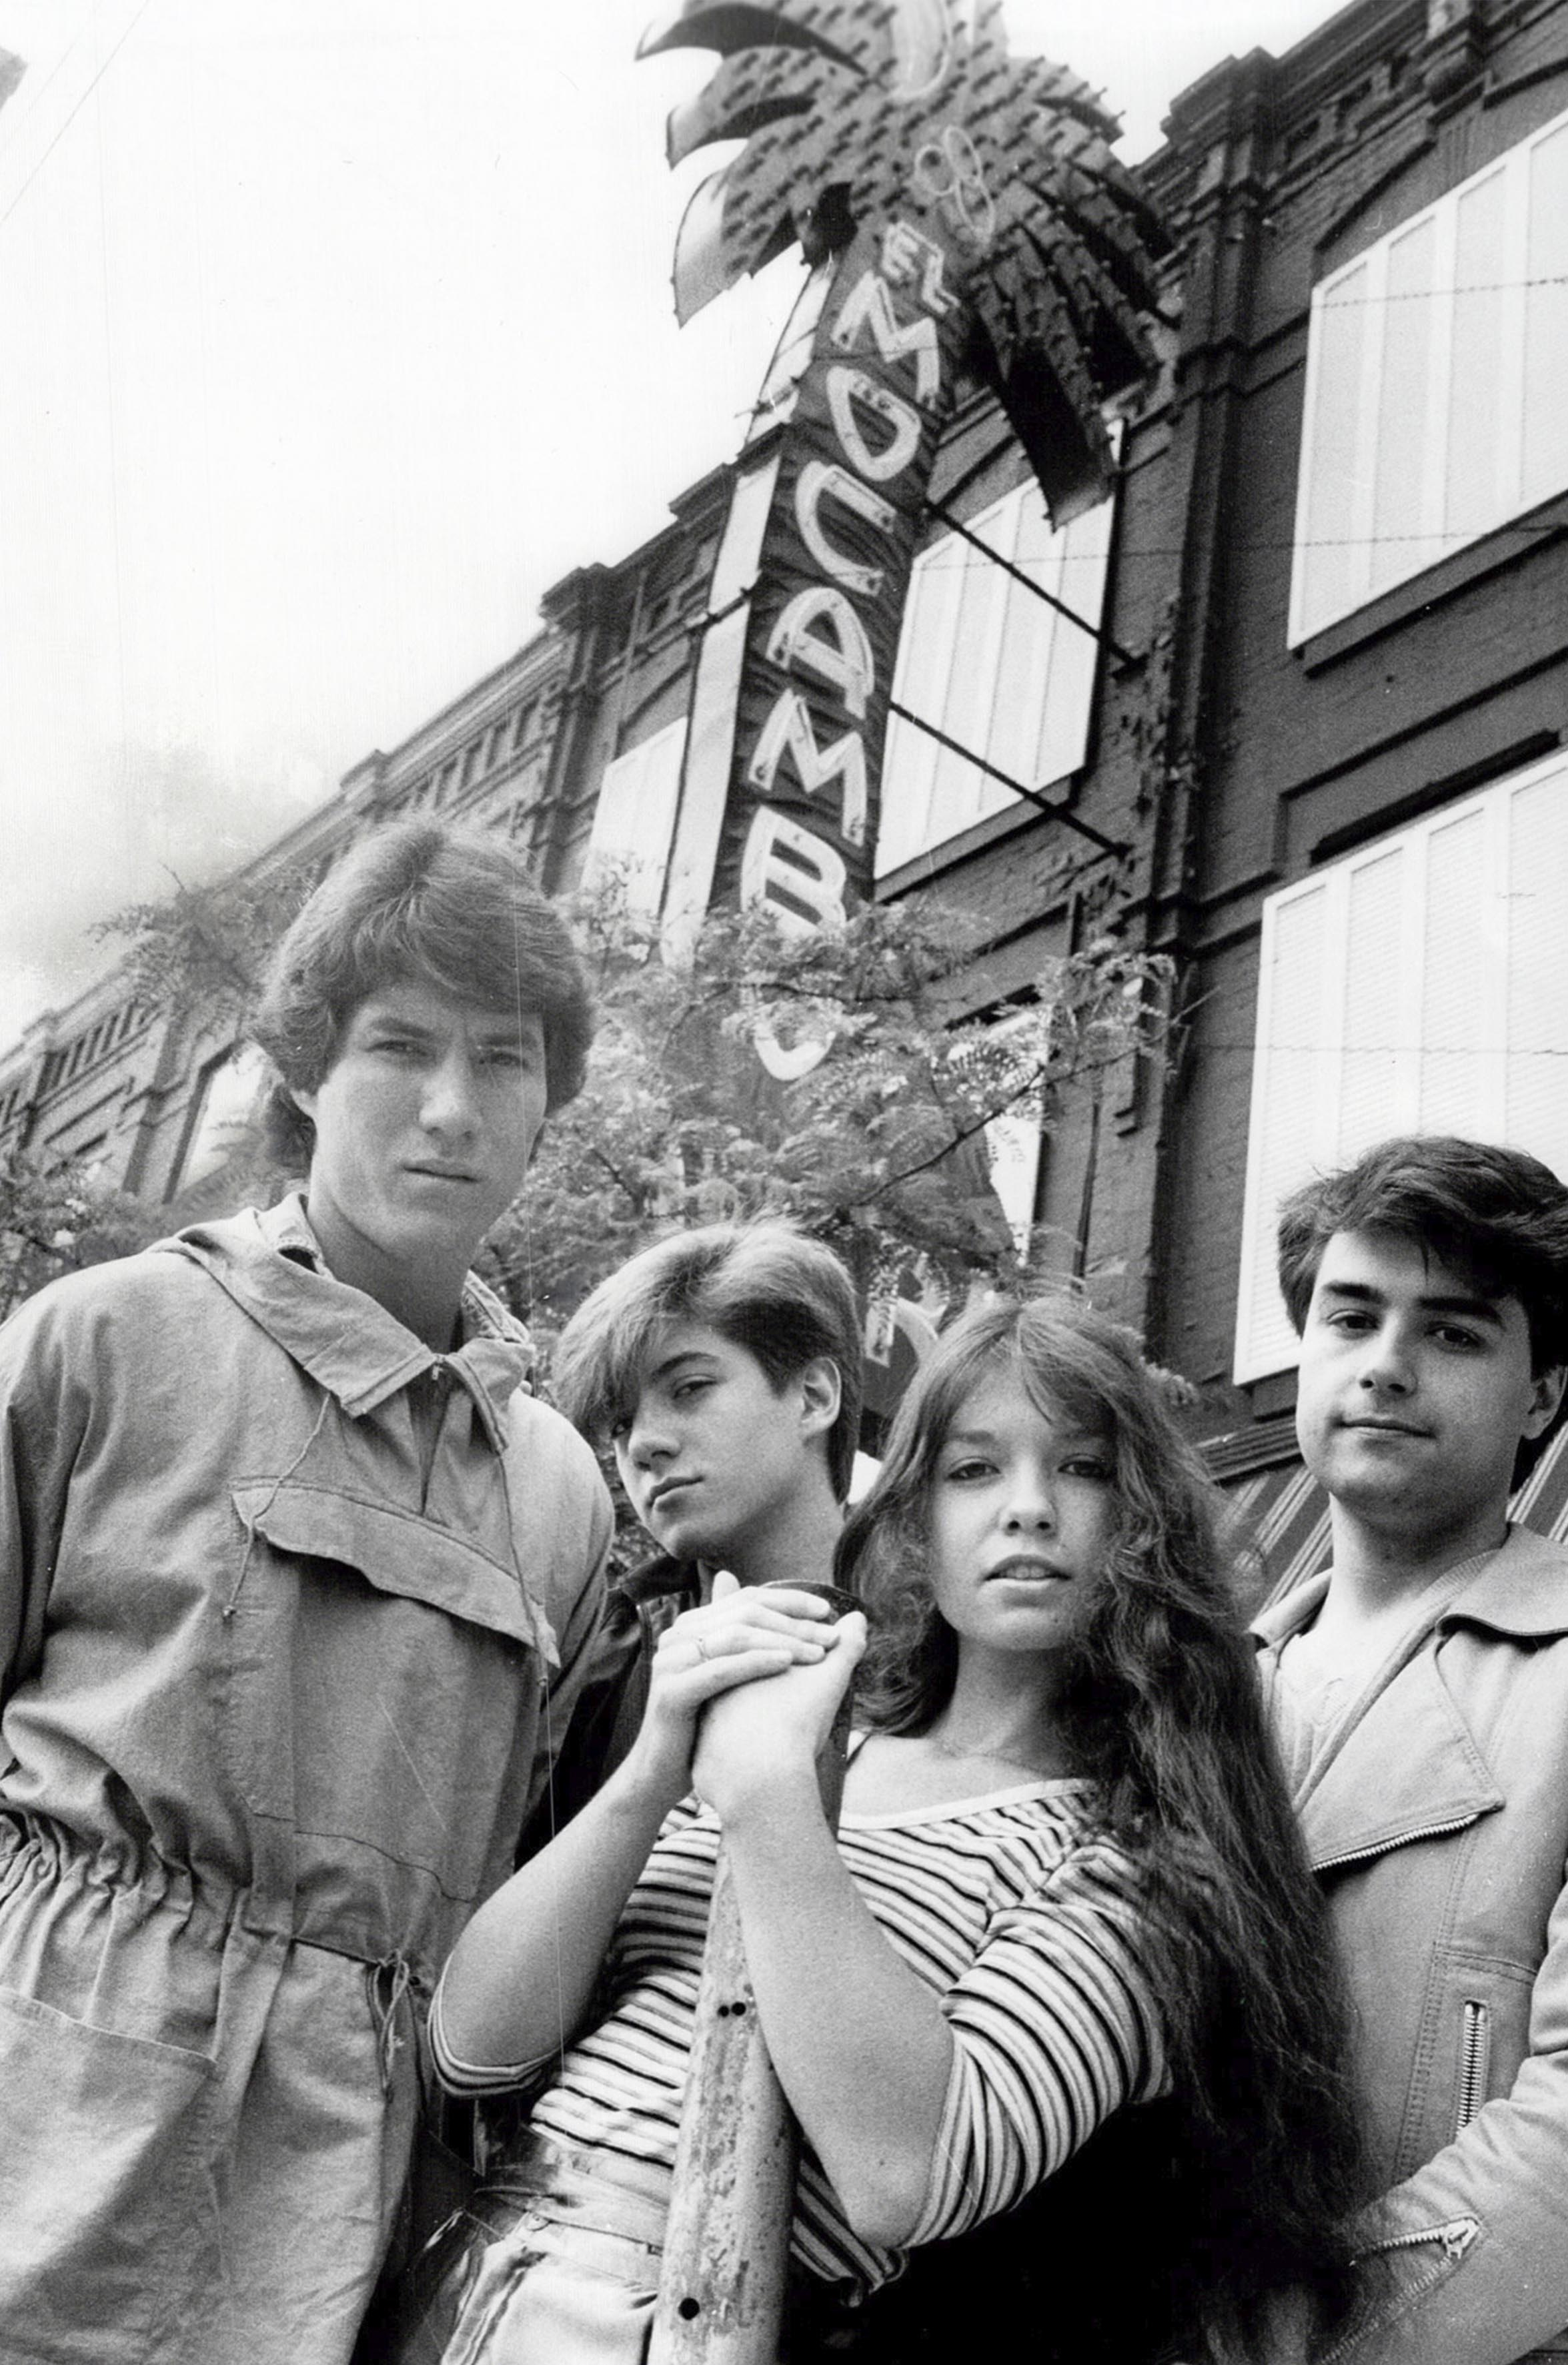 "A group of four young people stand in front of a music venue. Behind them the neon sign for the venue features a palm tree and the words ""El Mocambo""."